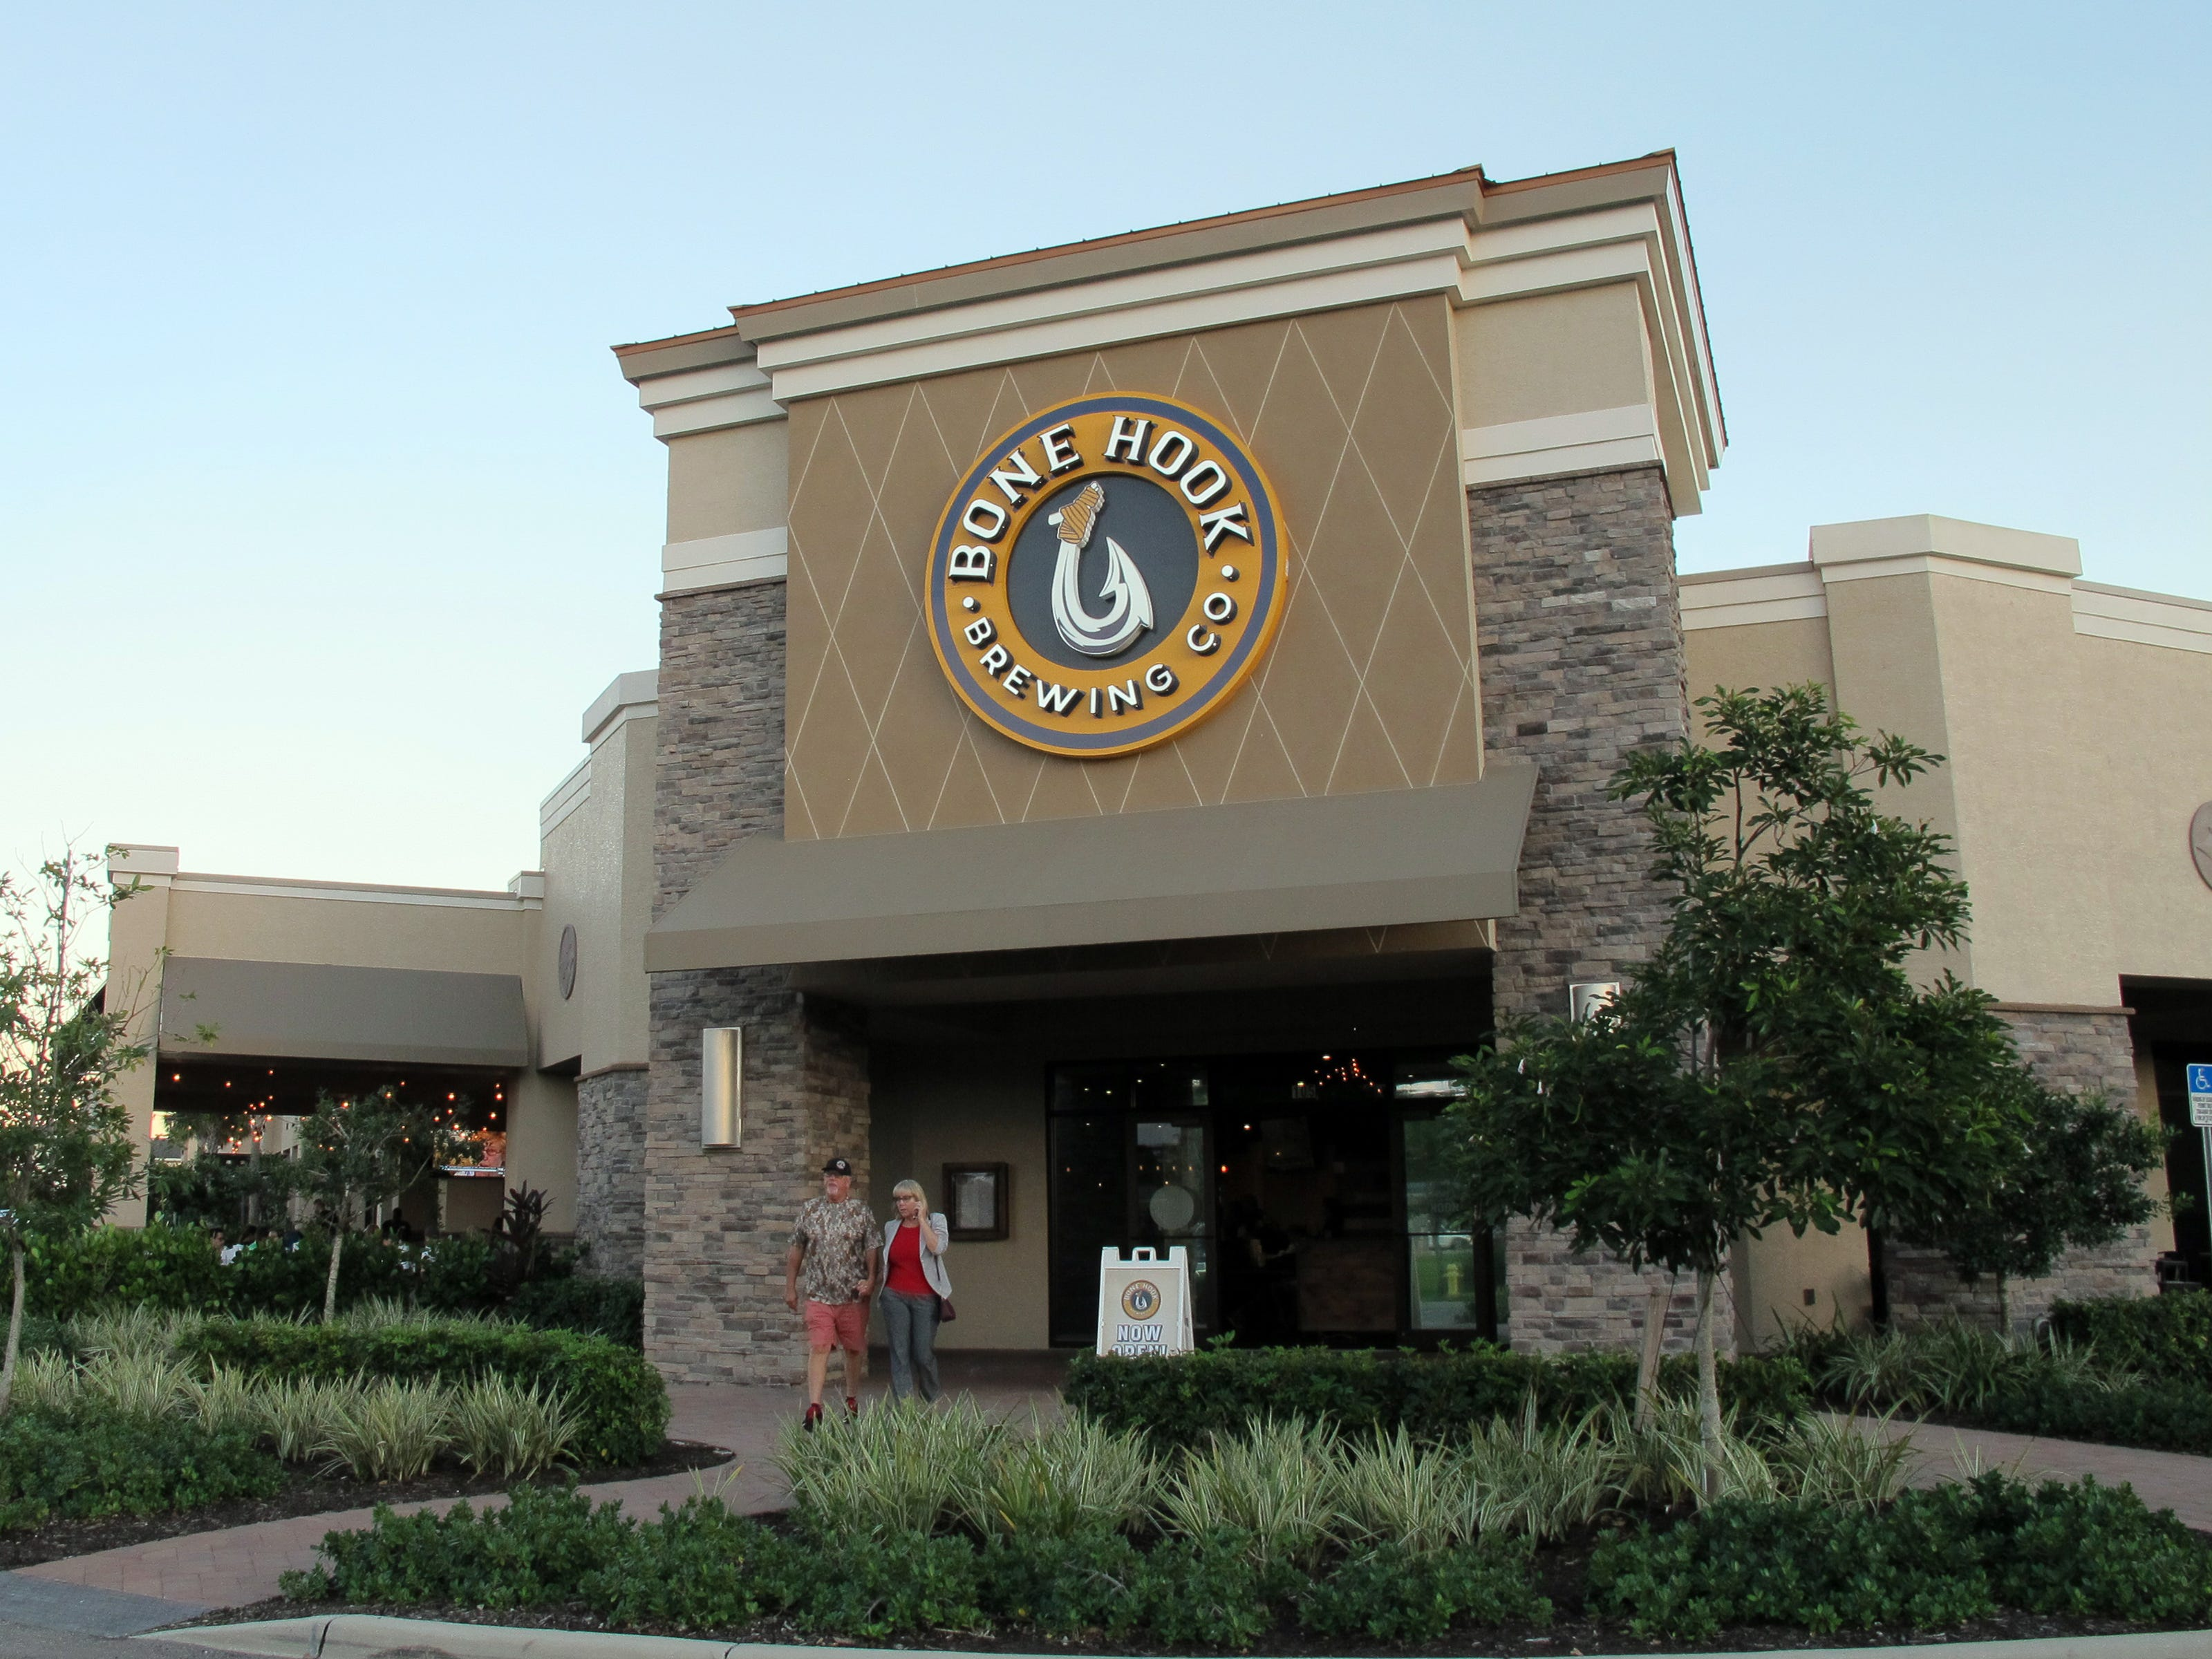 The new Bone Hook Brewing Co. anchors Creekside Corners retail center on the southeast corner of Goodlette-Frank and Immokalee roads in North Naples.